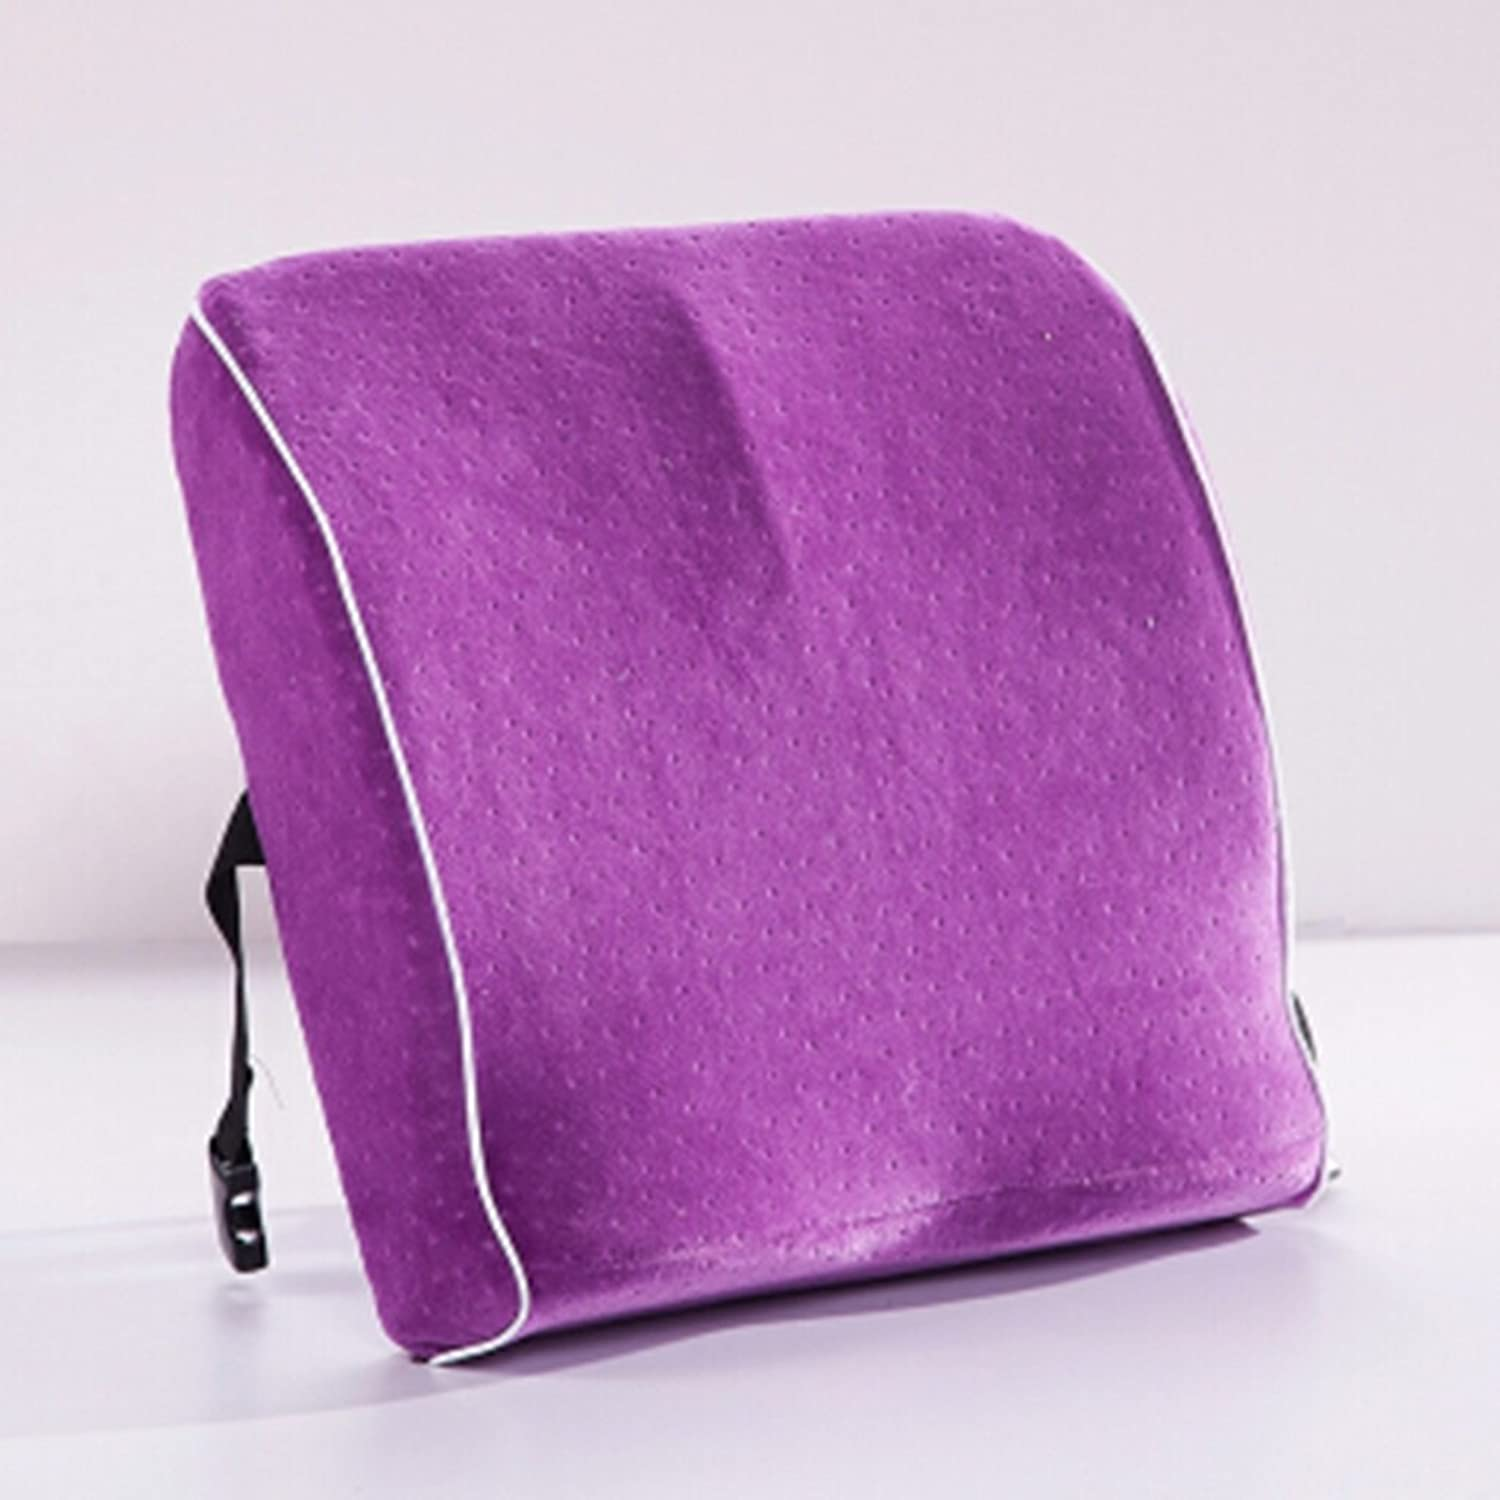 HAIYING Lumbar Back Support Cushion For Back Spine Pain Relief – Soft Foam With Firm Support Portable Adjustable. Great For Home, Office, Car 4040CM ( color   Purple )